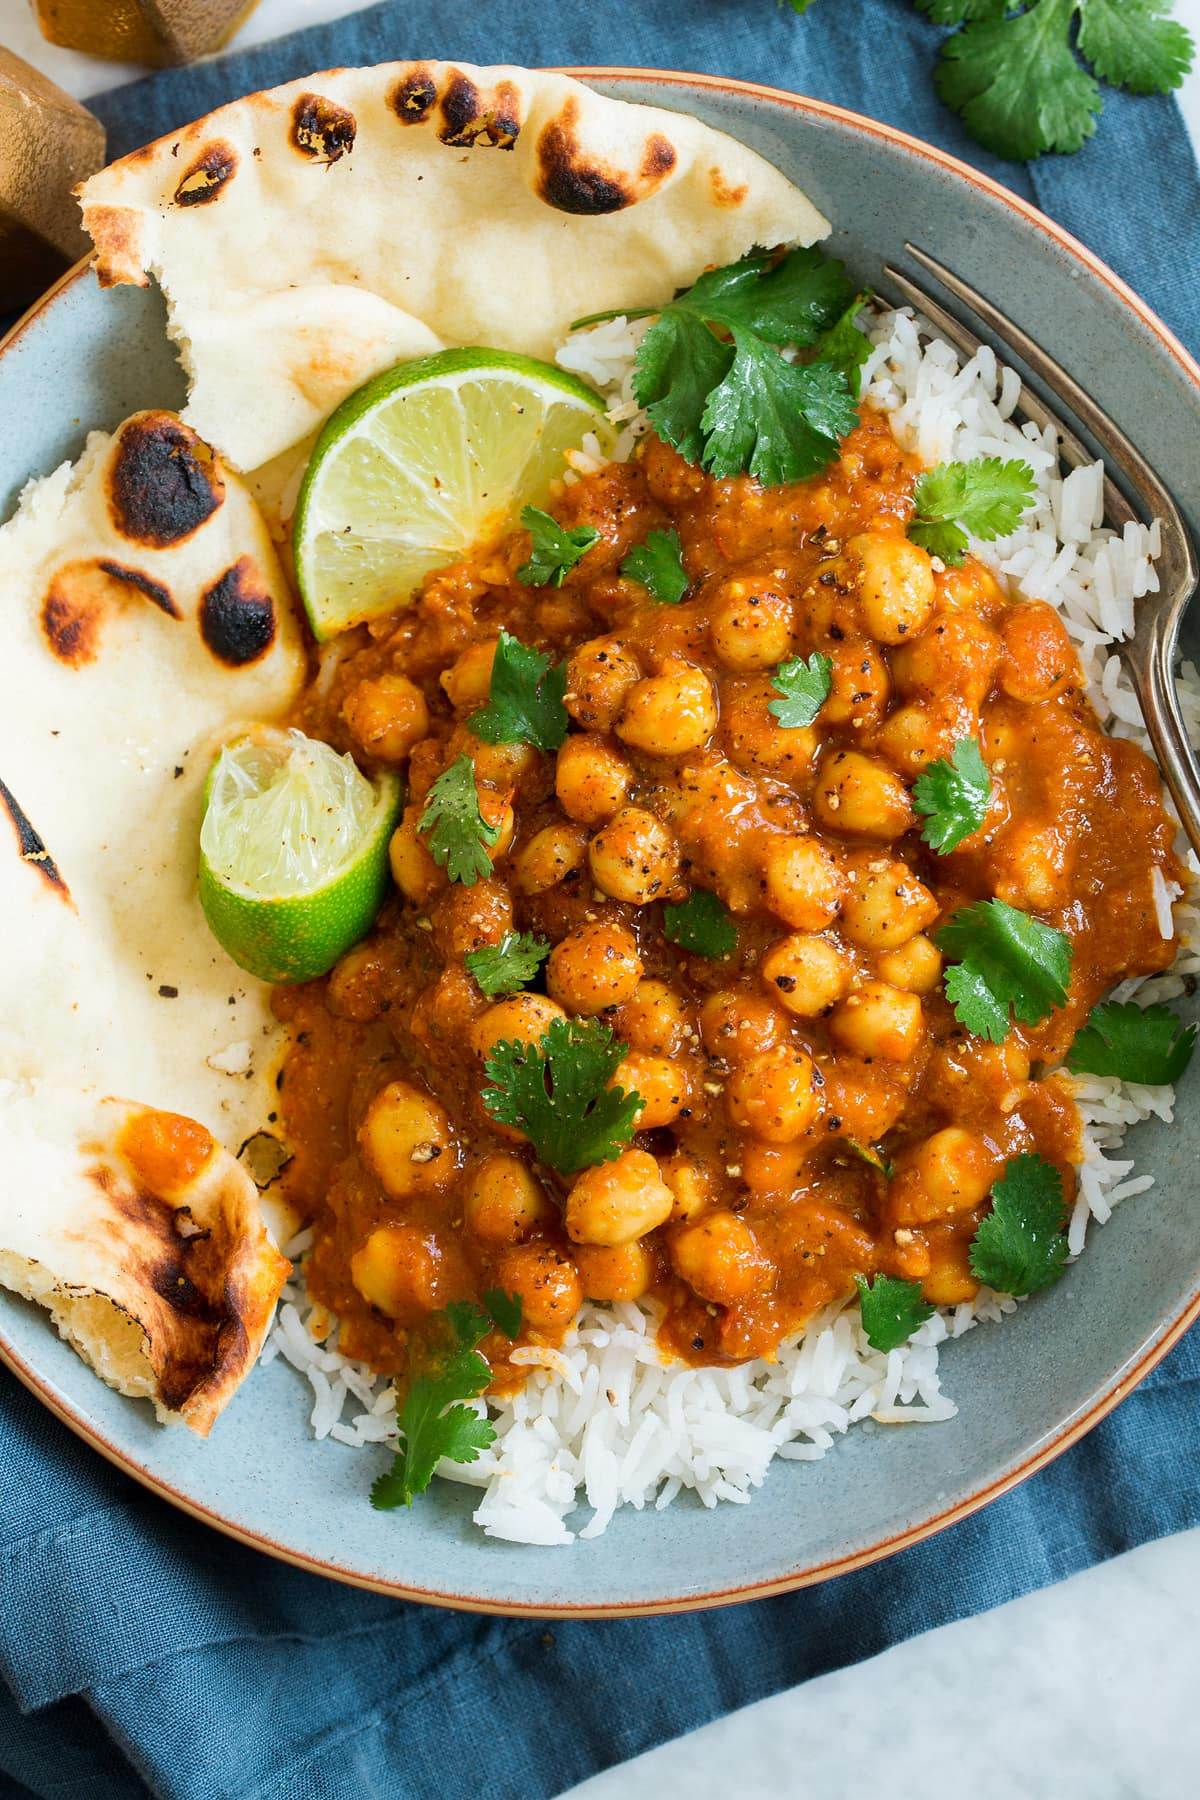 Overhead photo of single serving of chickpea curry with rice, naan, cilantro and limes.